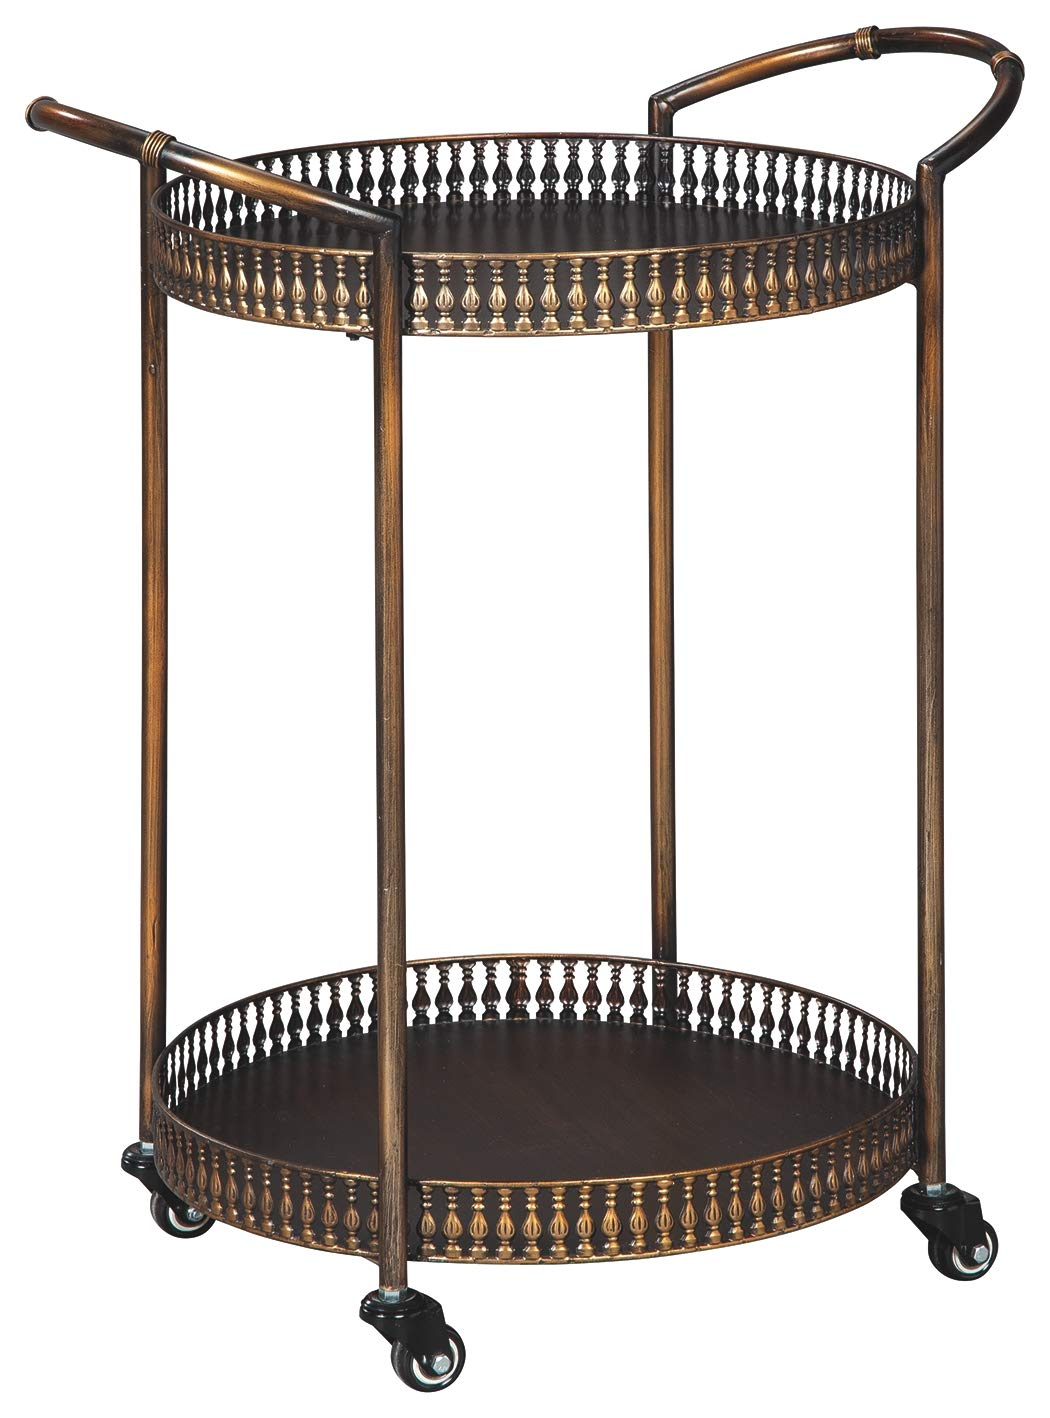 Signature Design by Ashley A4000100 Clarkburn Bar Cart, Bronze Finish by Signature Design by Ashley